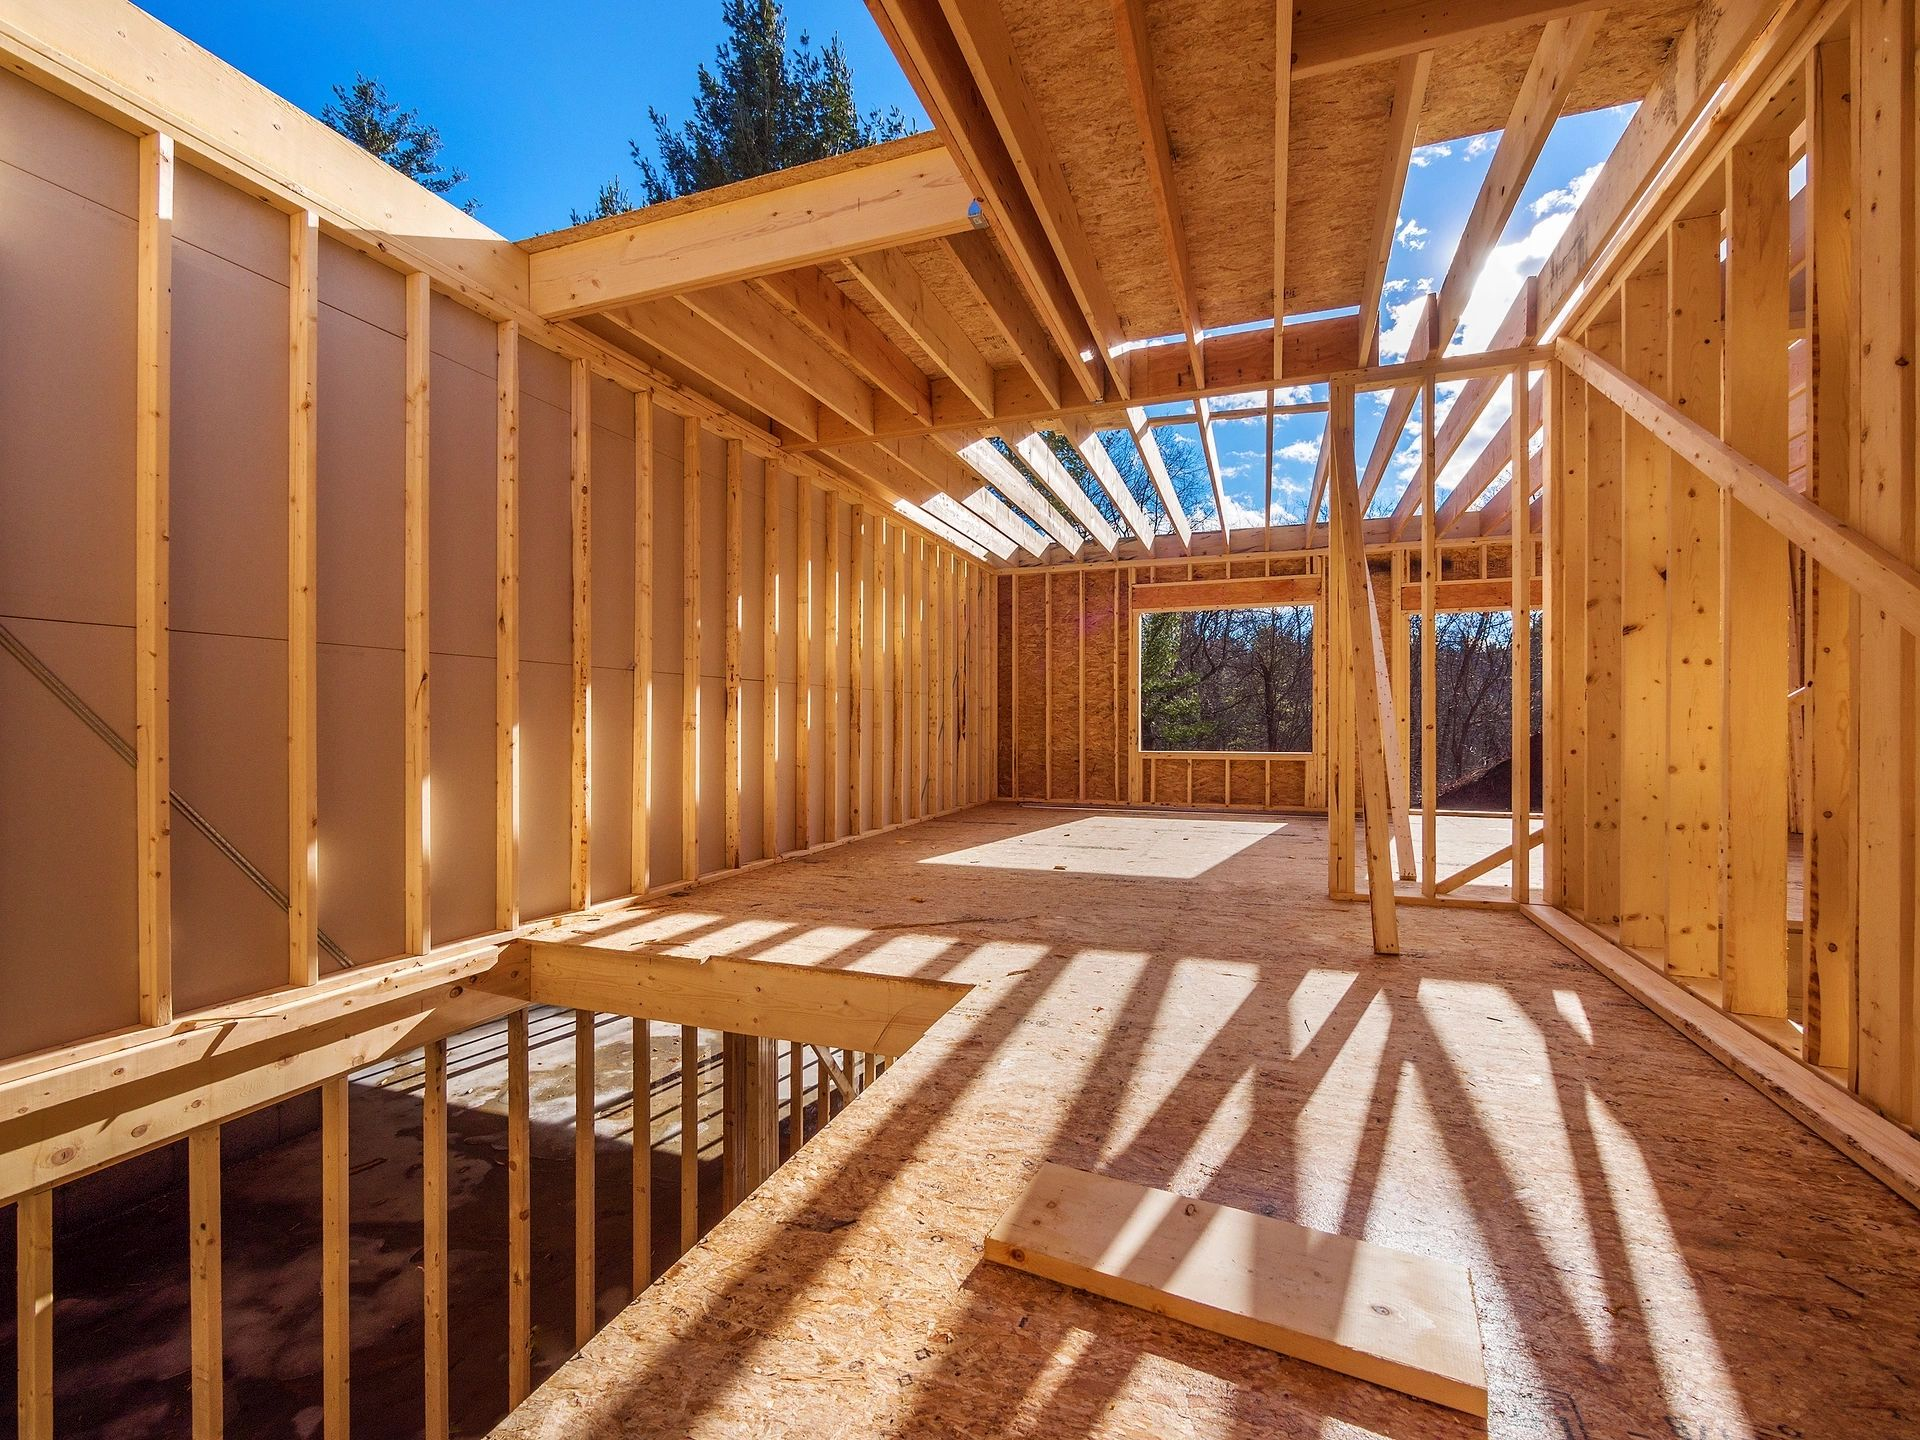 Ways To Save On Your New Construction Purchase